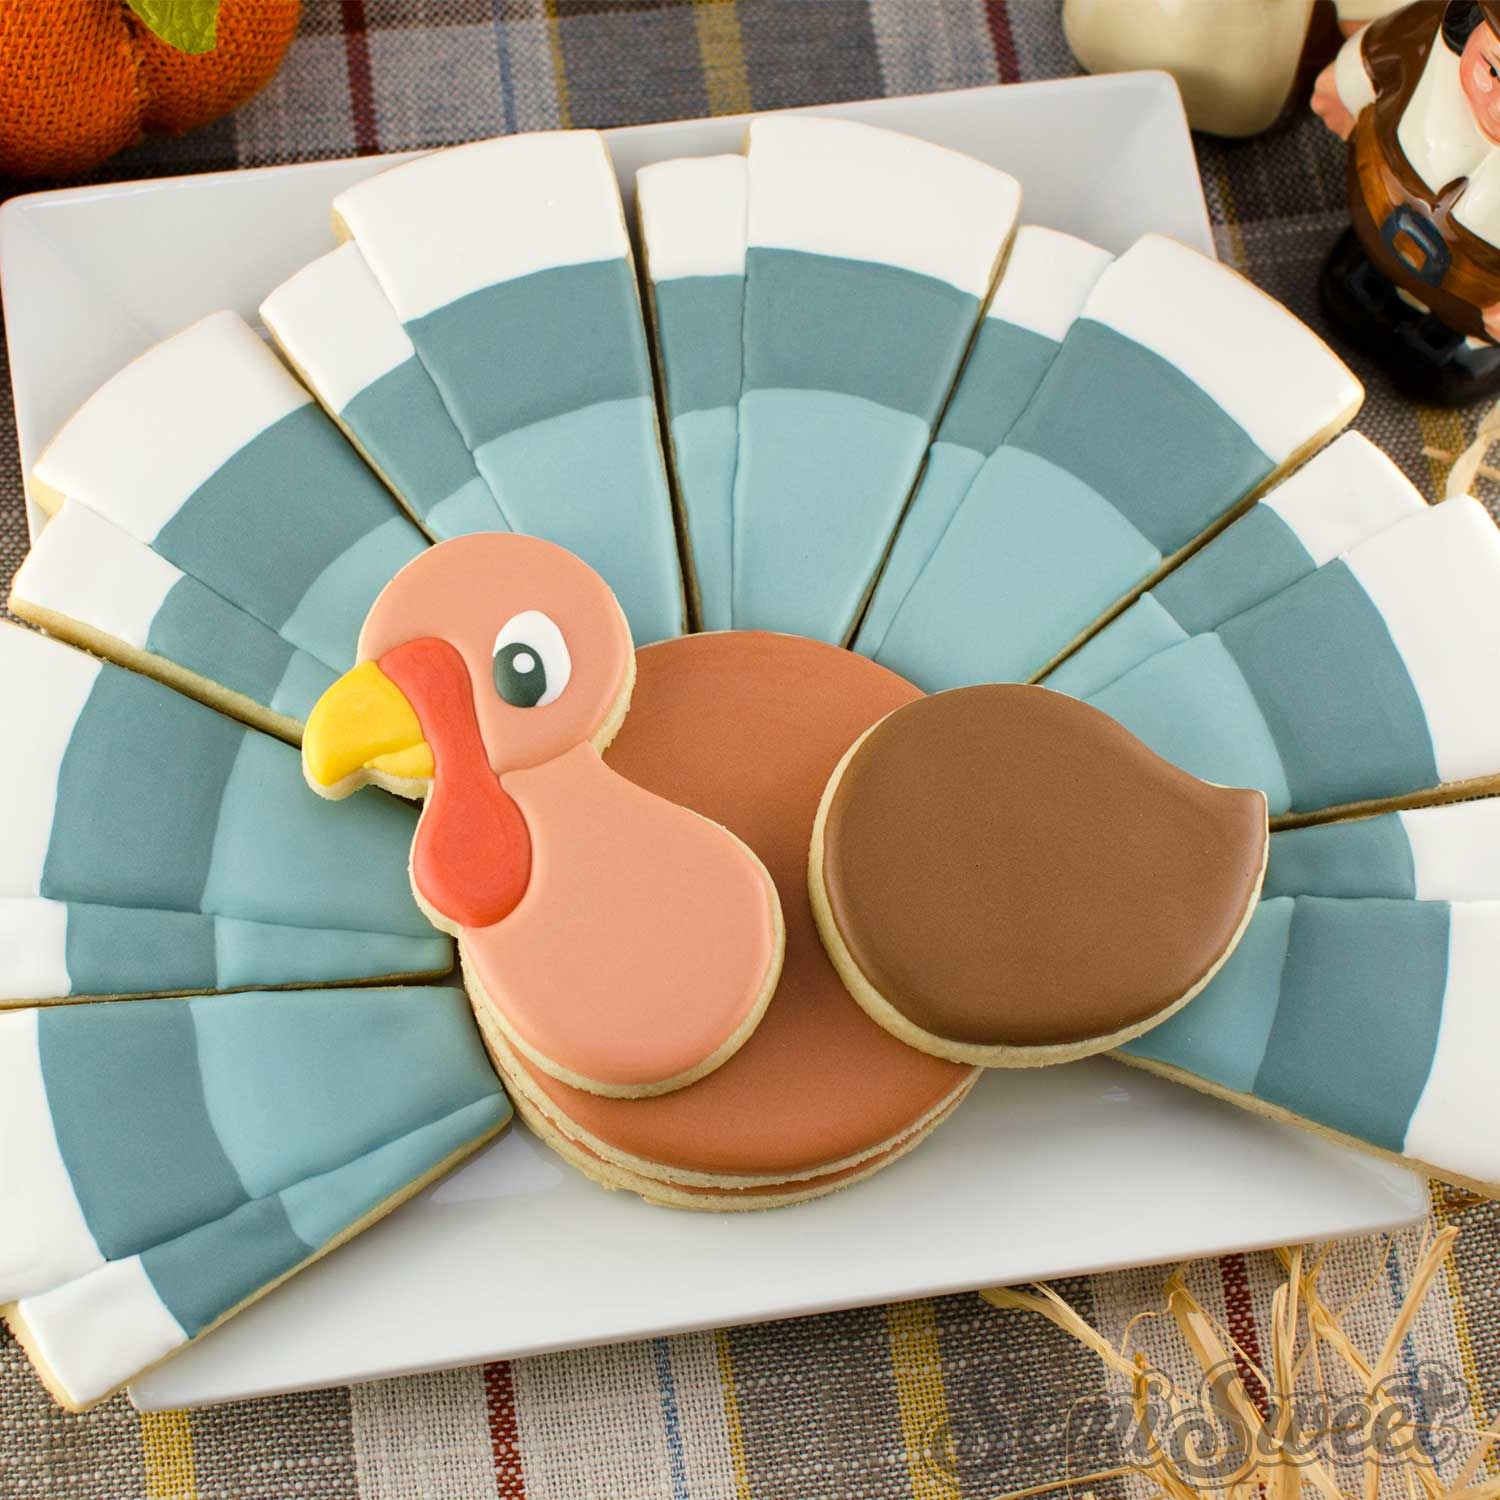 How to Make a Turkey Cookie Platter